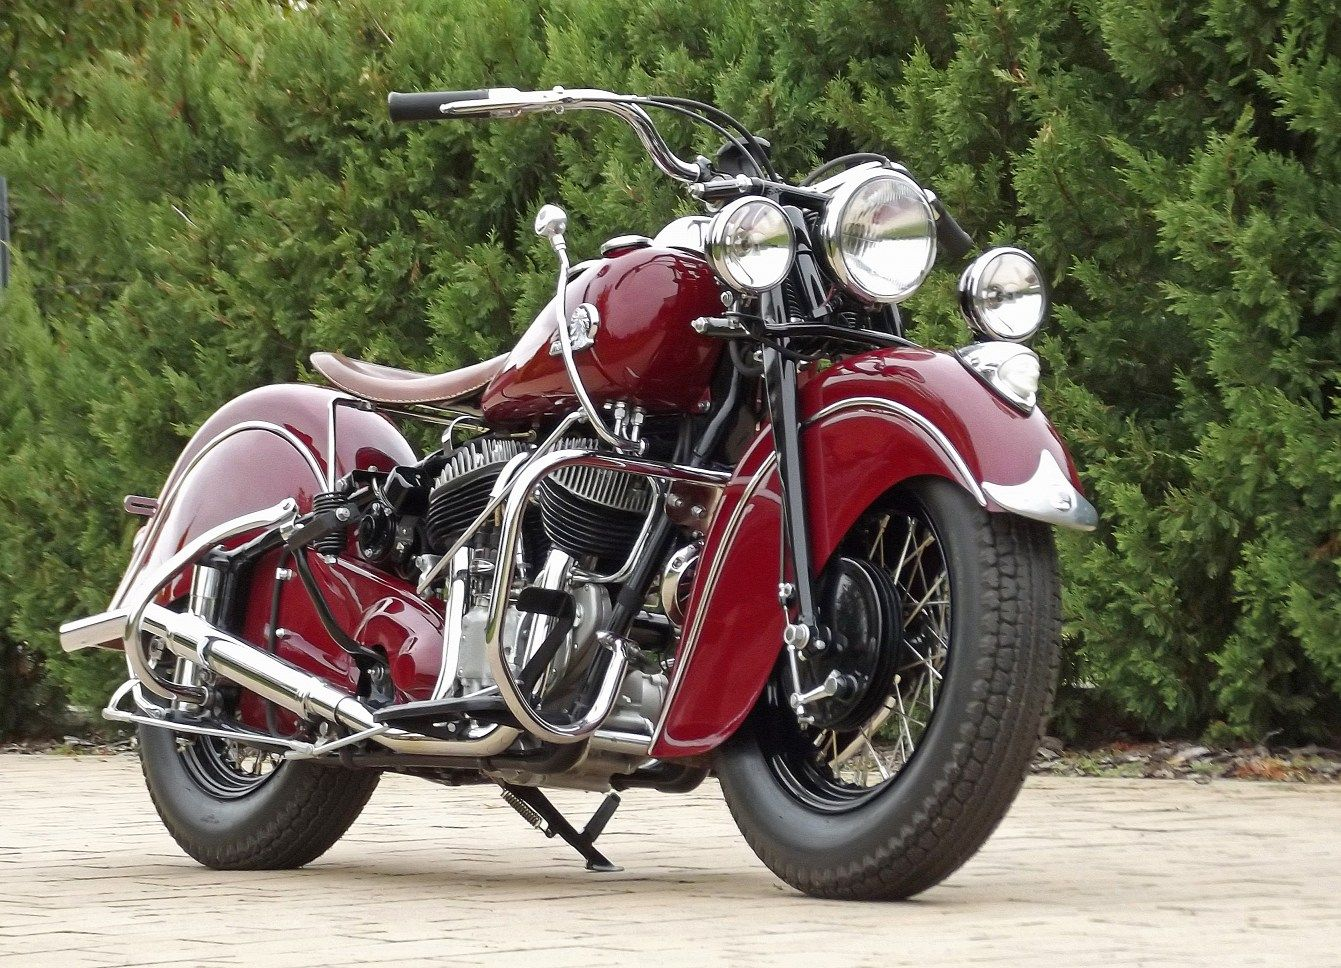 1950 1953 Indian Chief 80 Cu In 4 Speed Transmission 10 000 Max Indian Motorcycle Indian Motorbike Indian Motorcycle Vintage